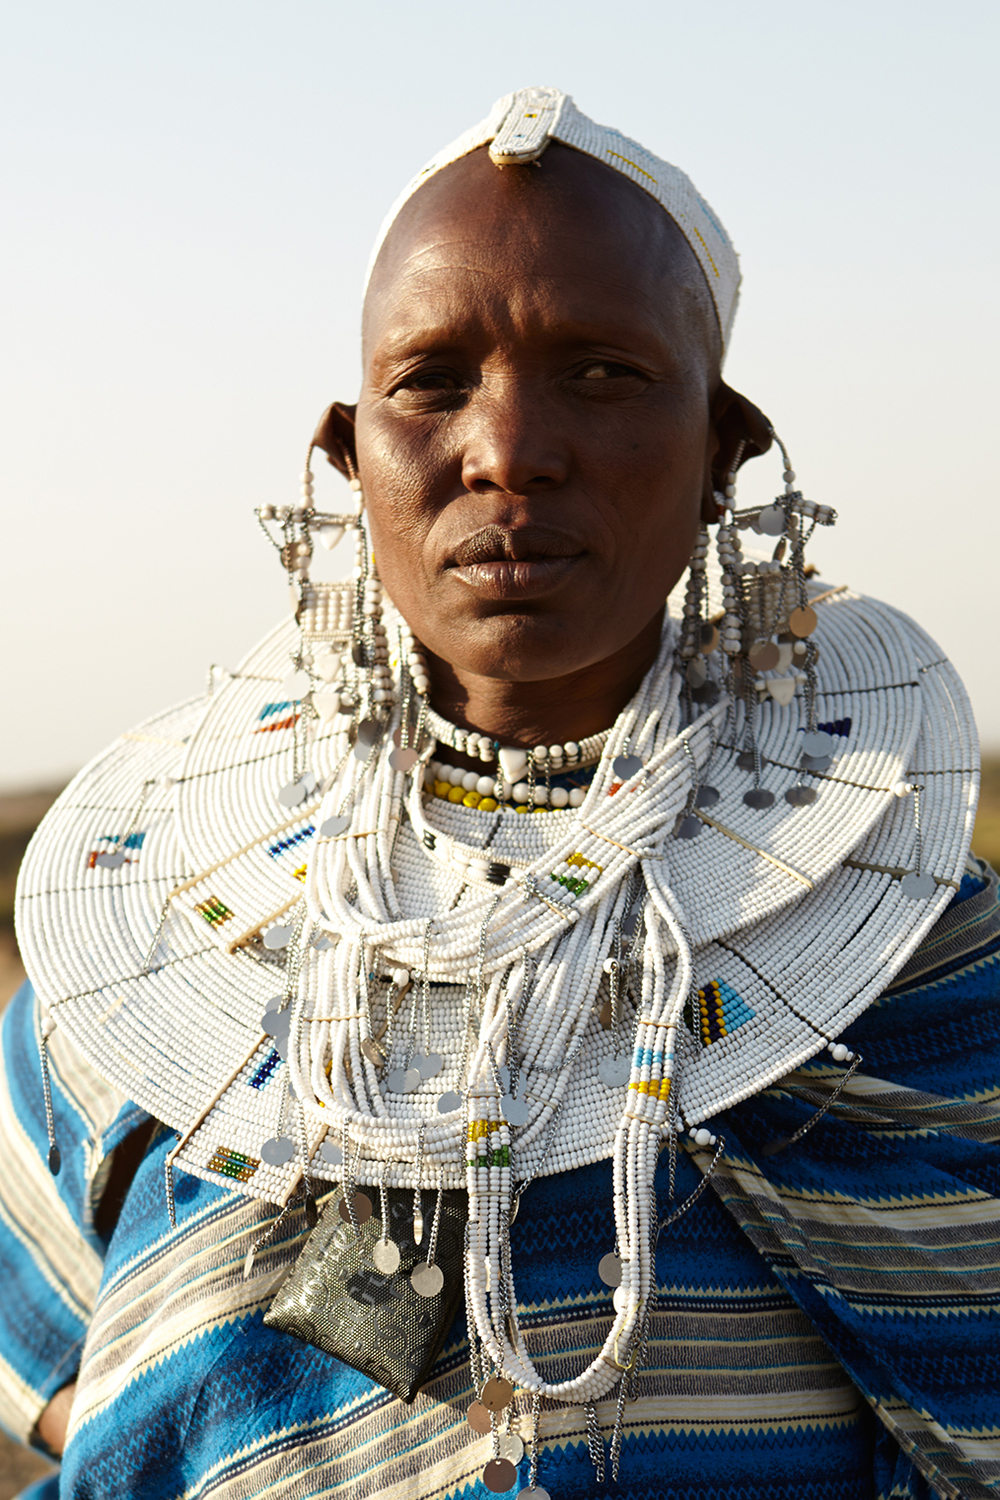 INSIDE:  ALAMA   The women who create ALAMA's one-of-a-kind jewelry pieces are members of  a traditional pastoral African tribe from the upland steppes of Tanzania. Each jewelry piece is a handmade celebration of their ancestral traditions...   MORE.